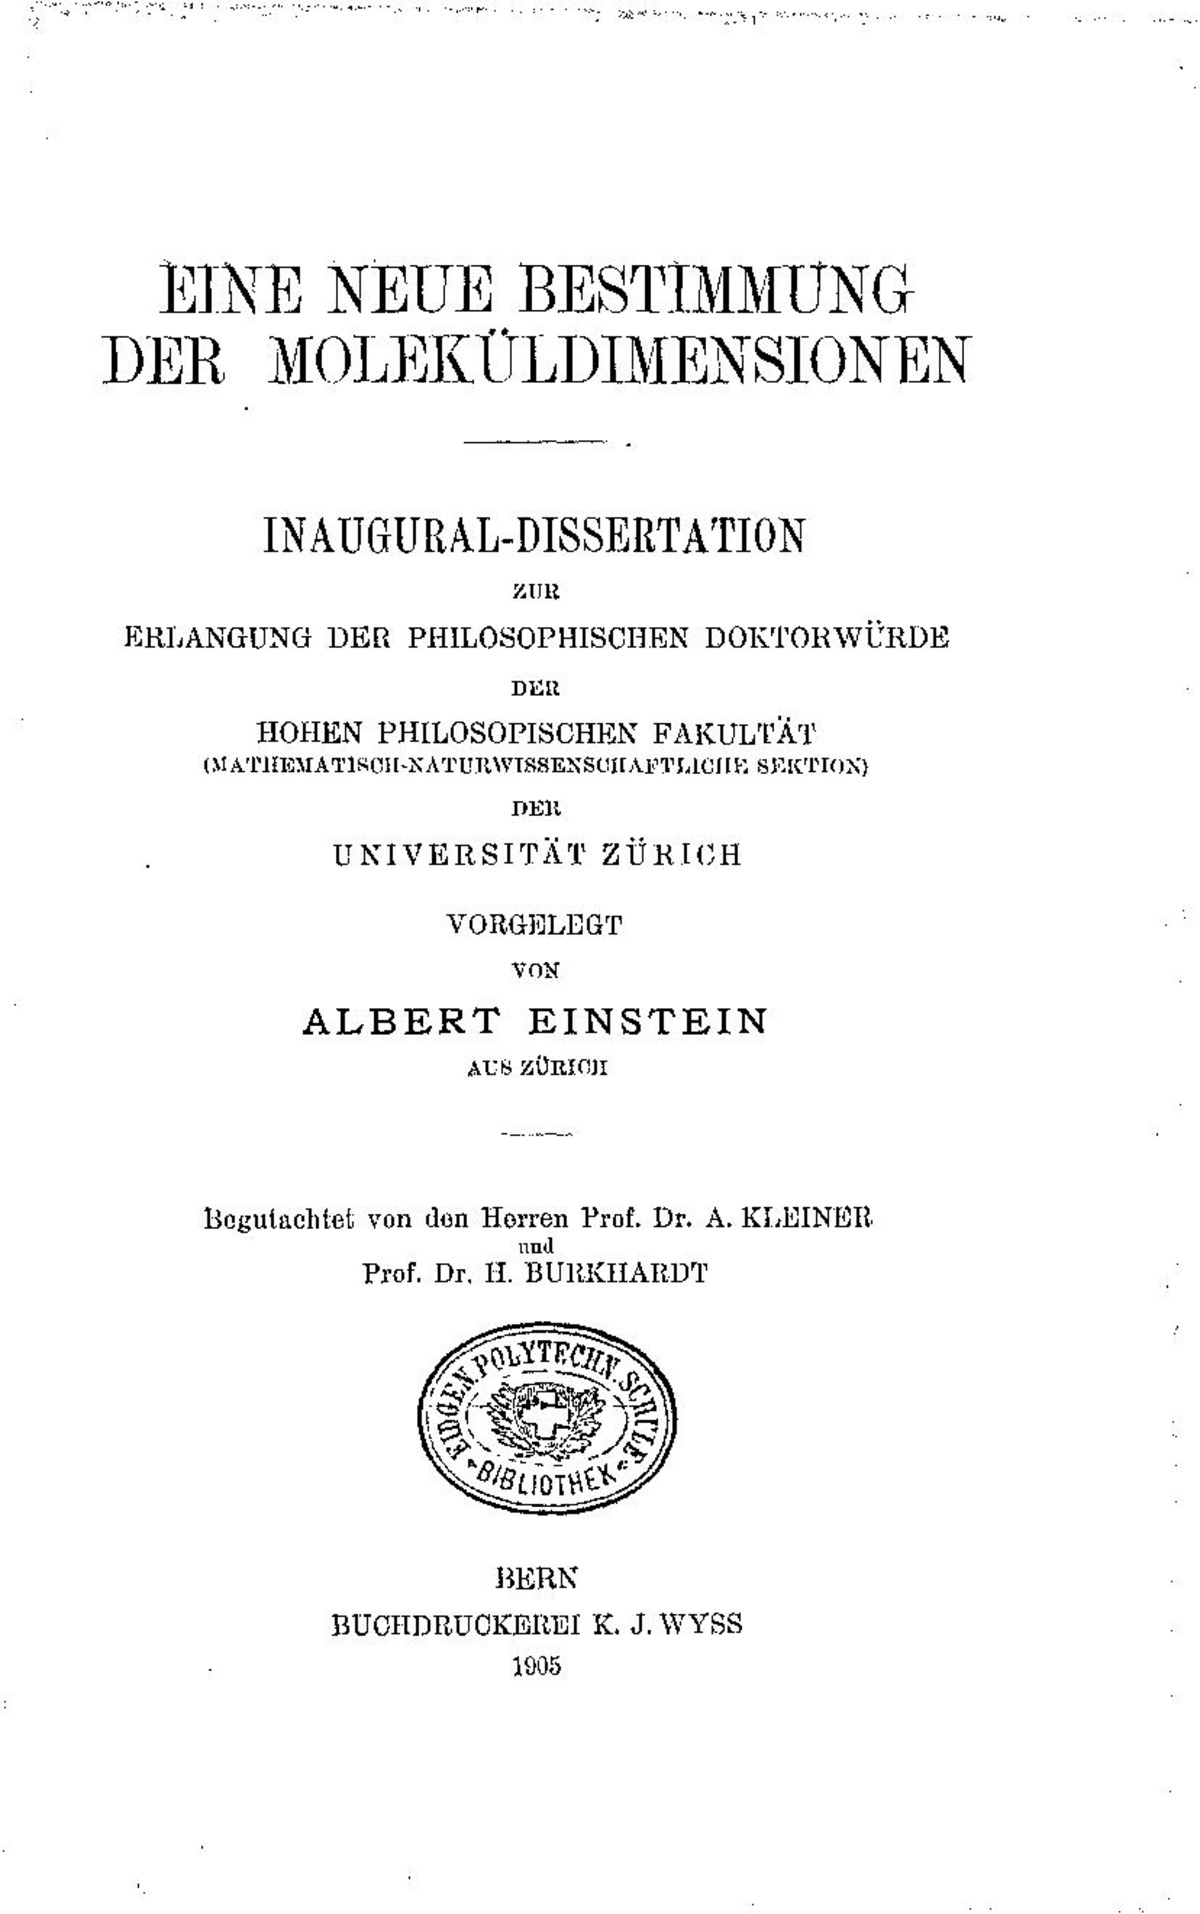 Dissertation albert einstein